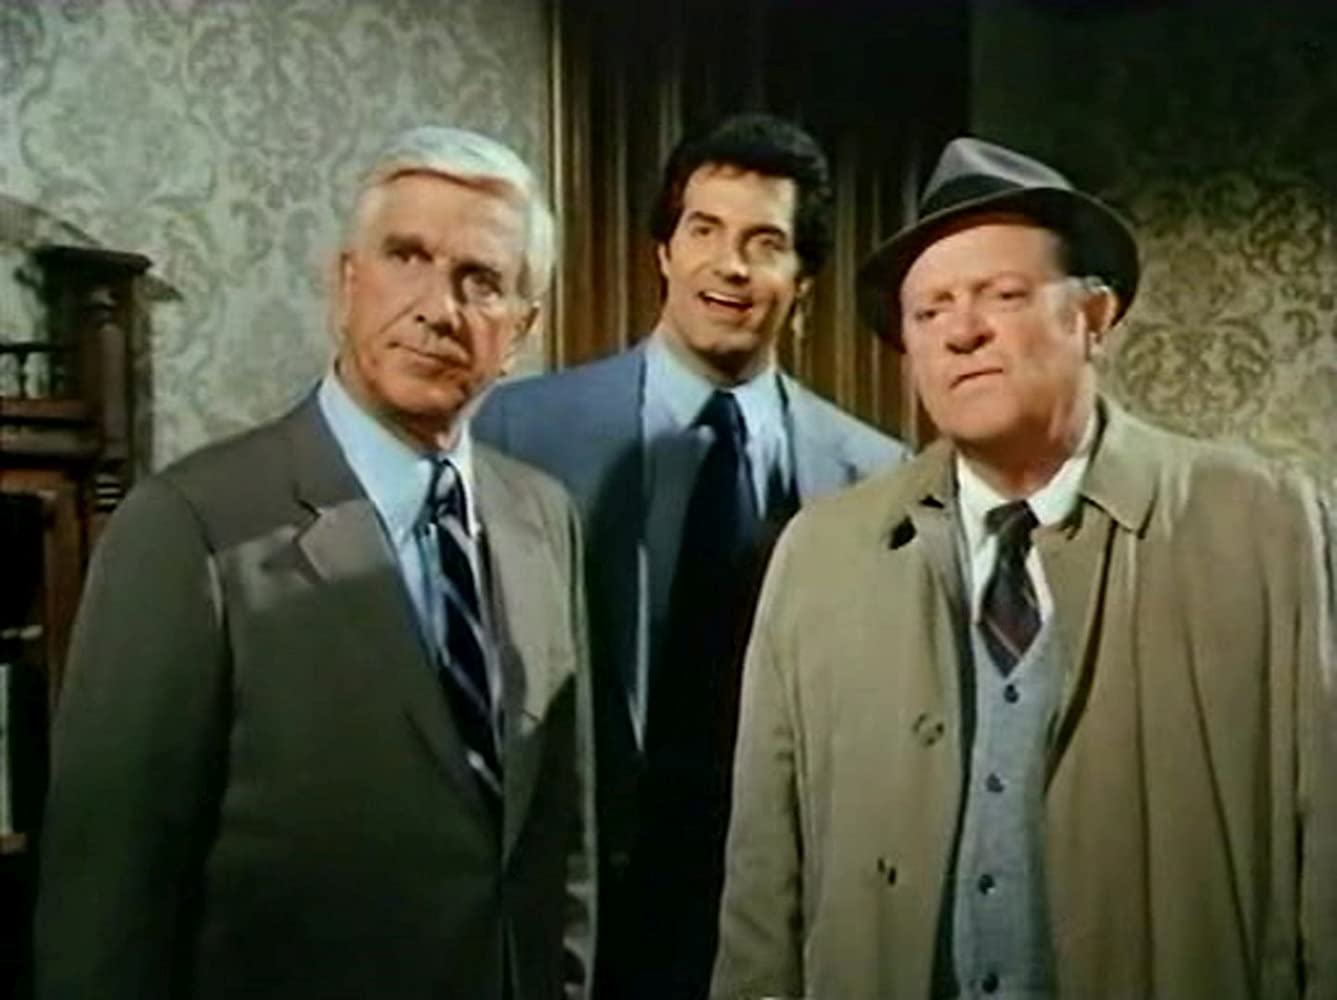 Watch Police Squad! 1982 full movie online